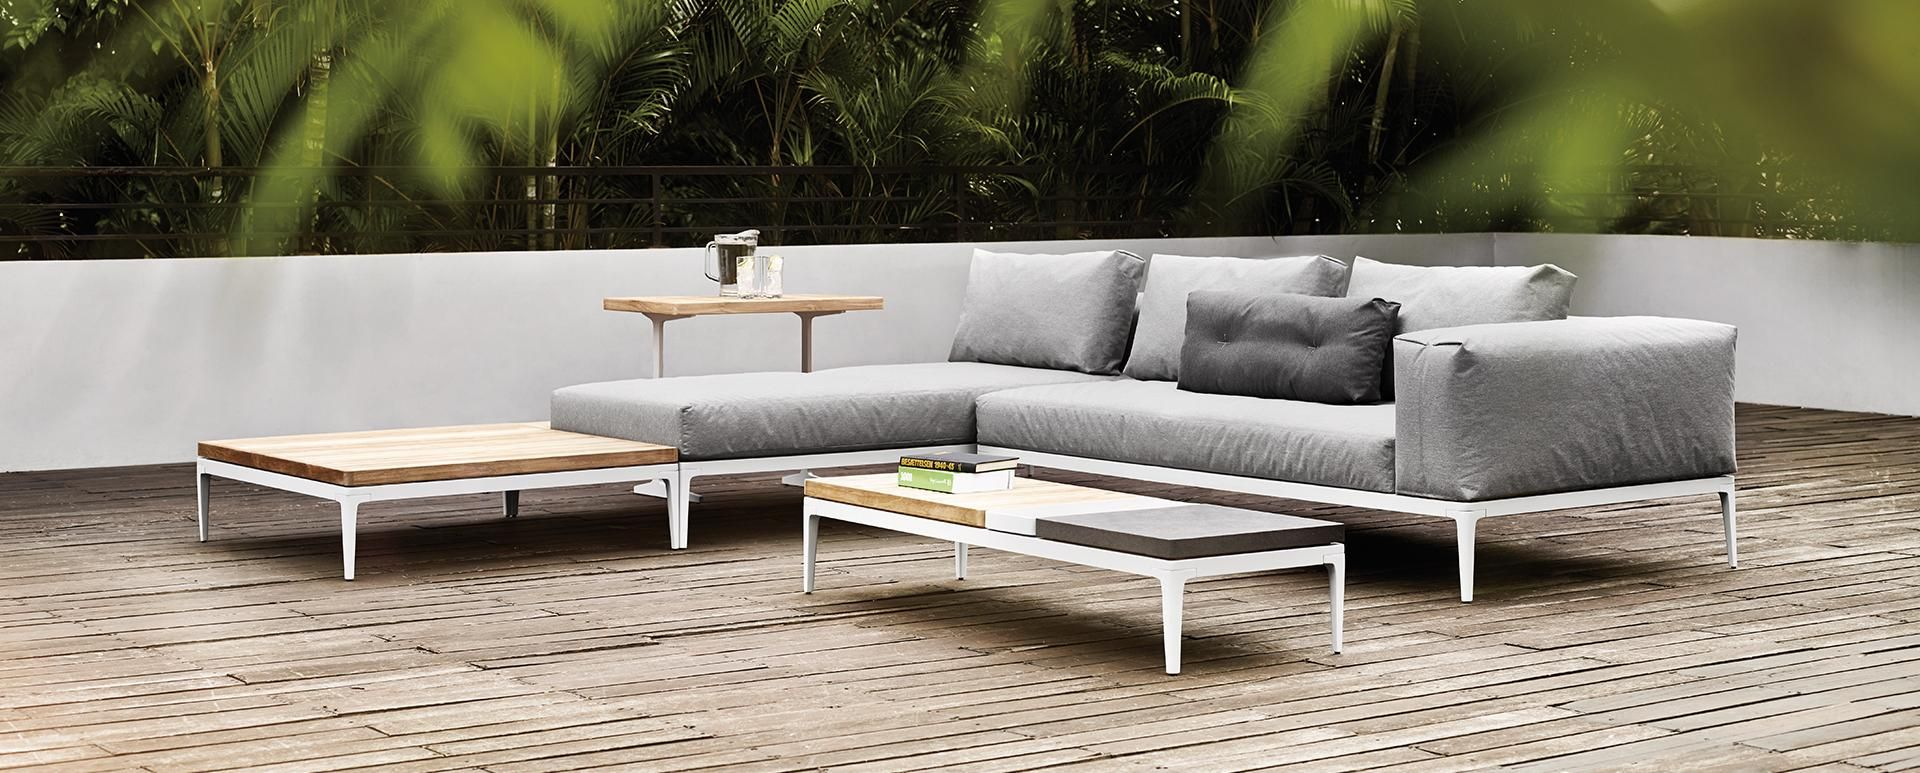 Great Outdoor Lounge Furniture Grid | Gloster Furniture